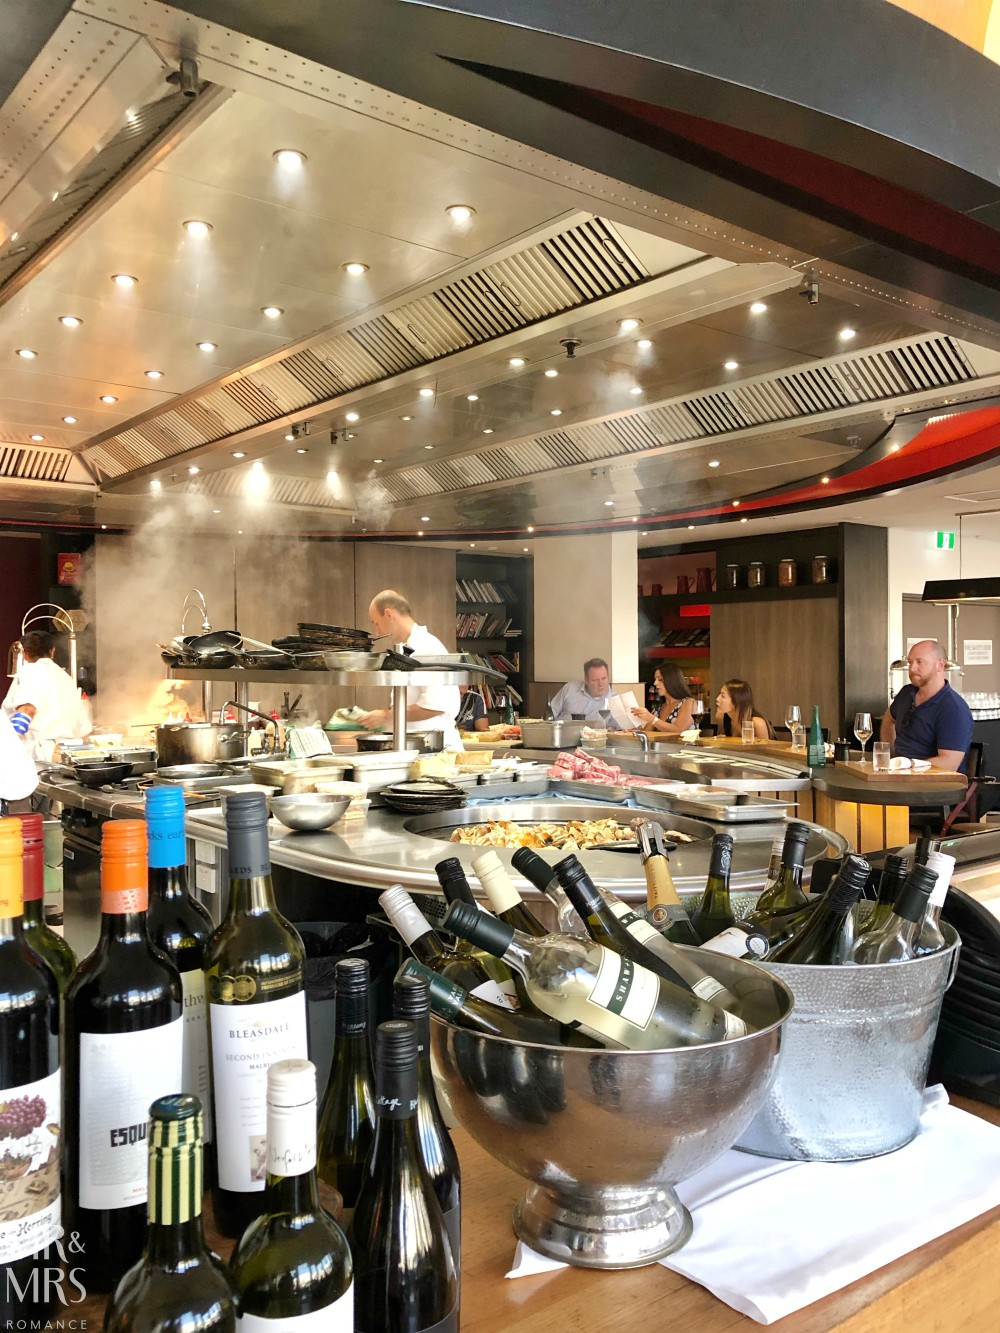 Where to eat in Sydney, Australia - The Ternary grill kitchen